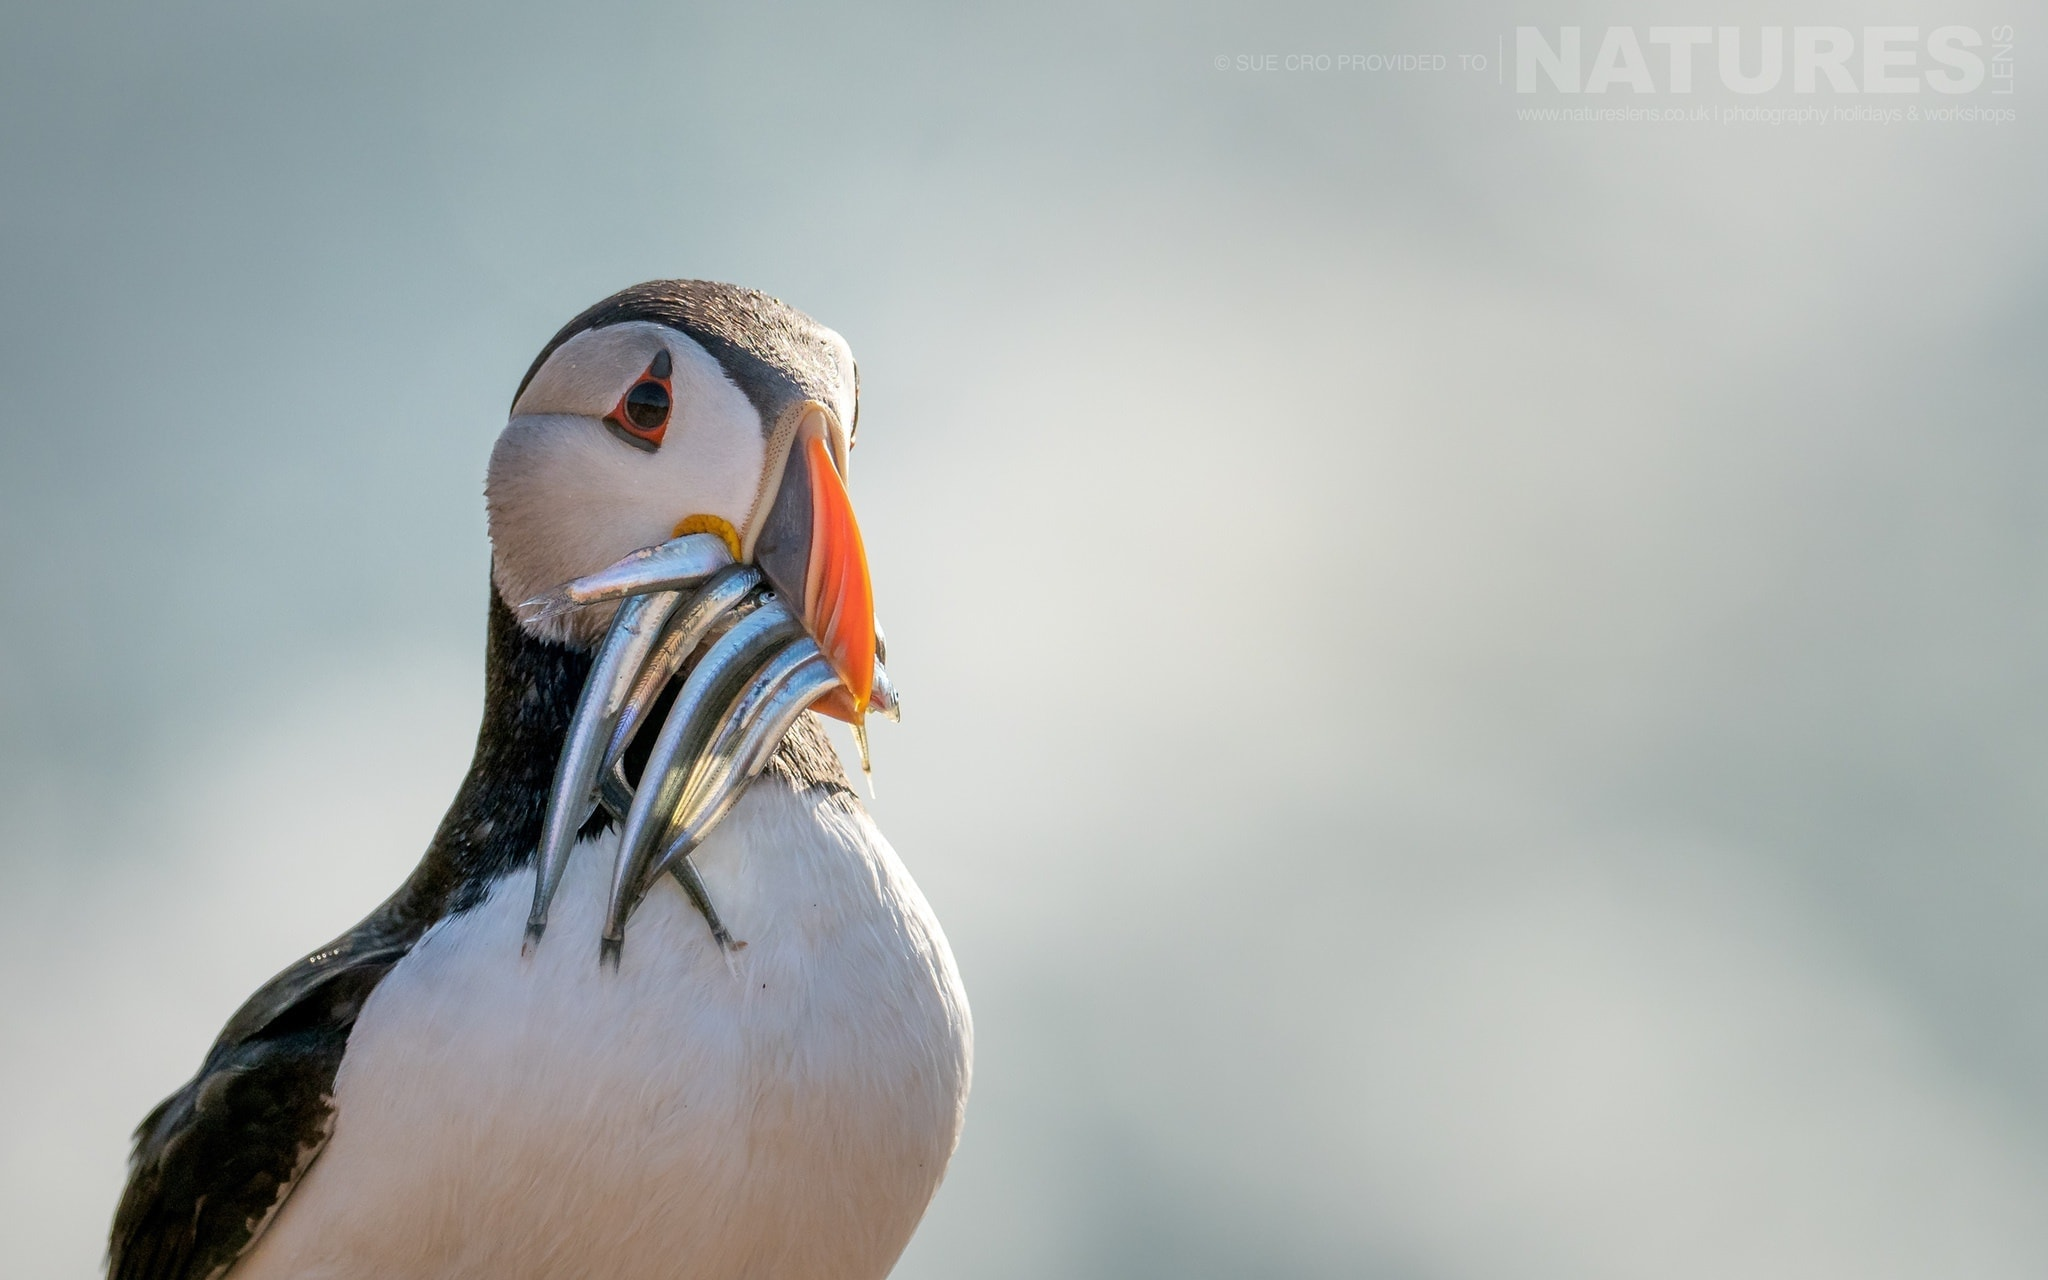 With A Beak Full Of Sand Eels, One Of Skomer's Puffins Poses For The Classic Skomer Image   Photographed During The NaturesLens Atlantic Puffins Of Skomer Photography Holiday